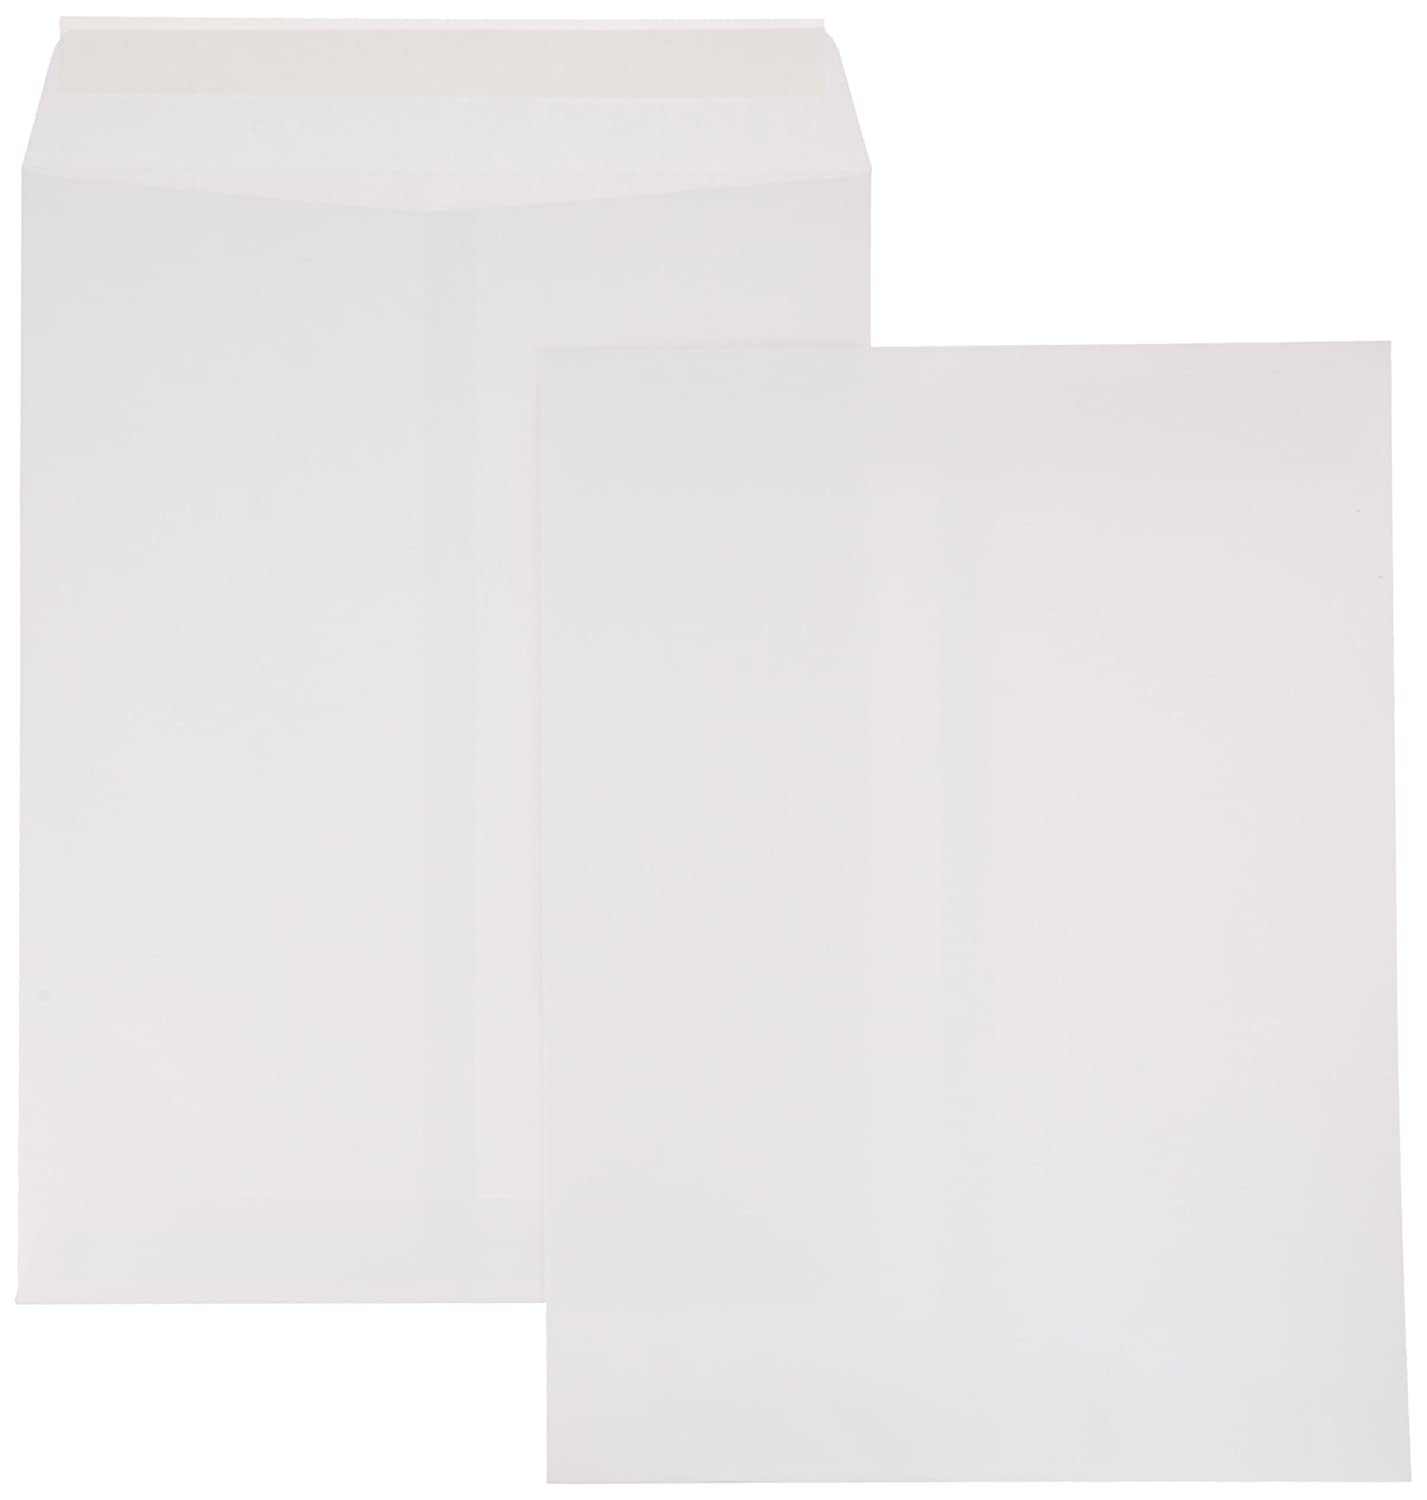 AmazonBasics Catalog Envelopes, Peel & Seal, 9 x 12 Inch, White, 100-Pack